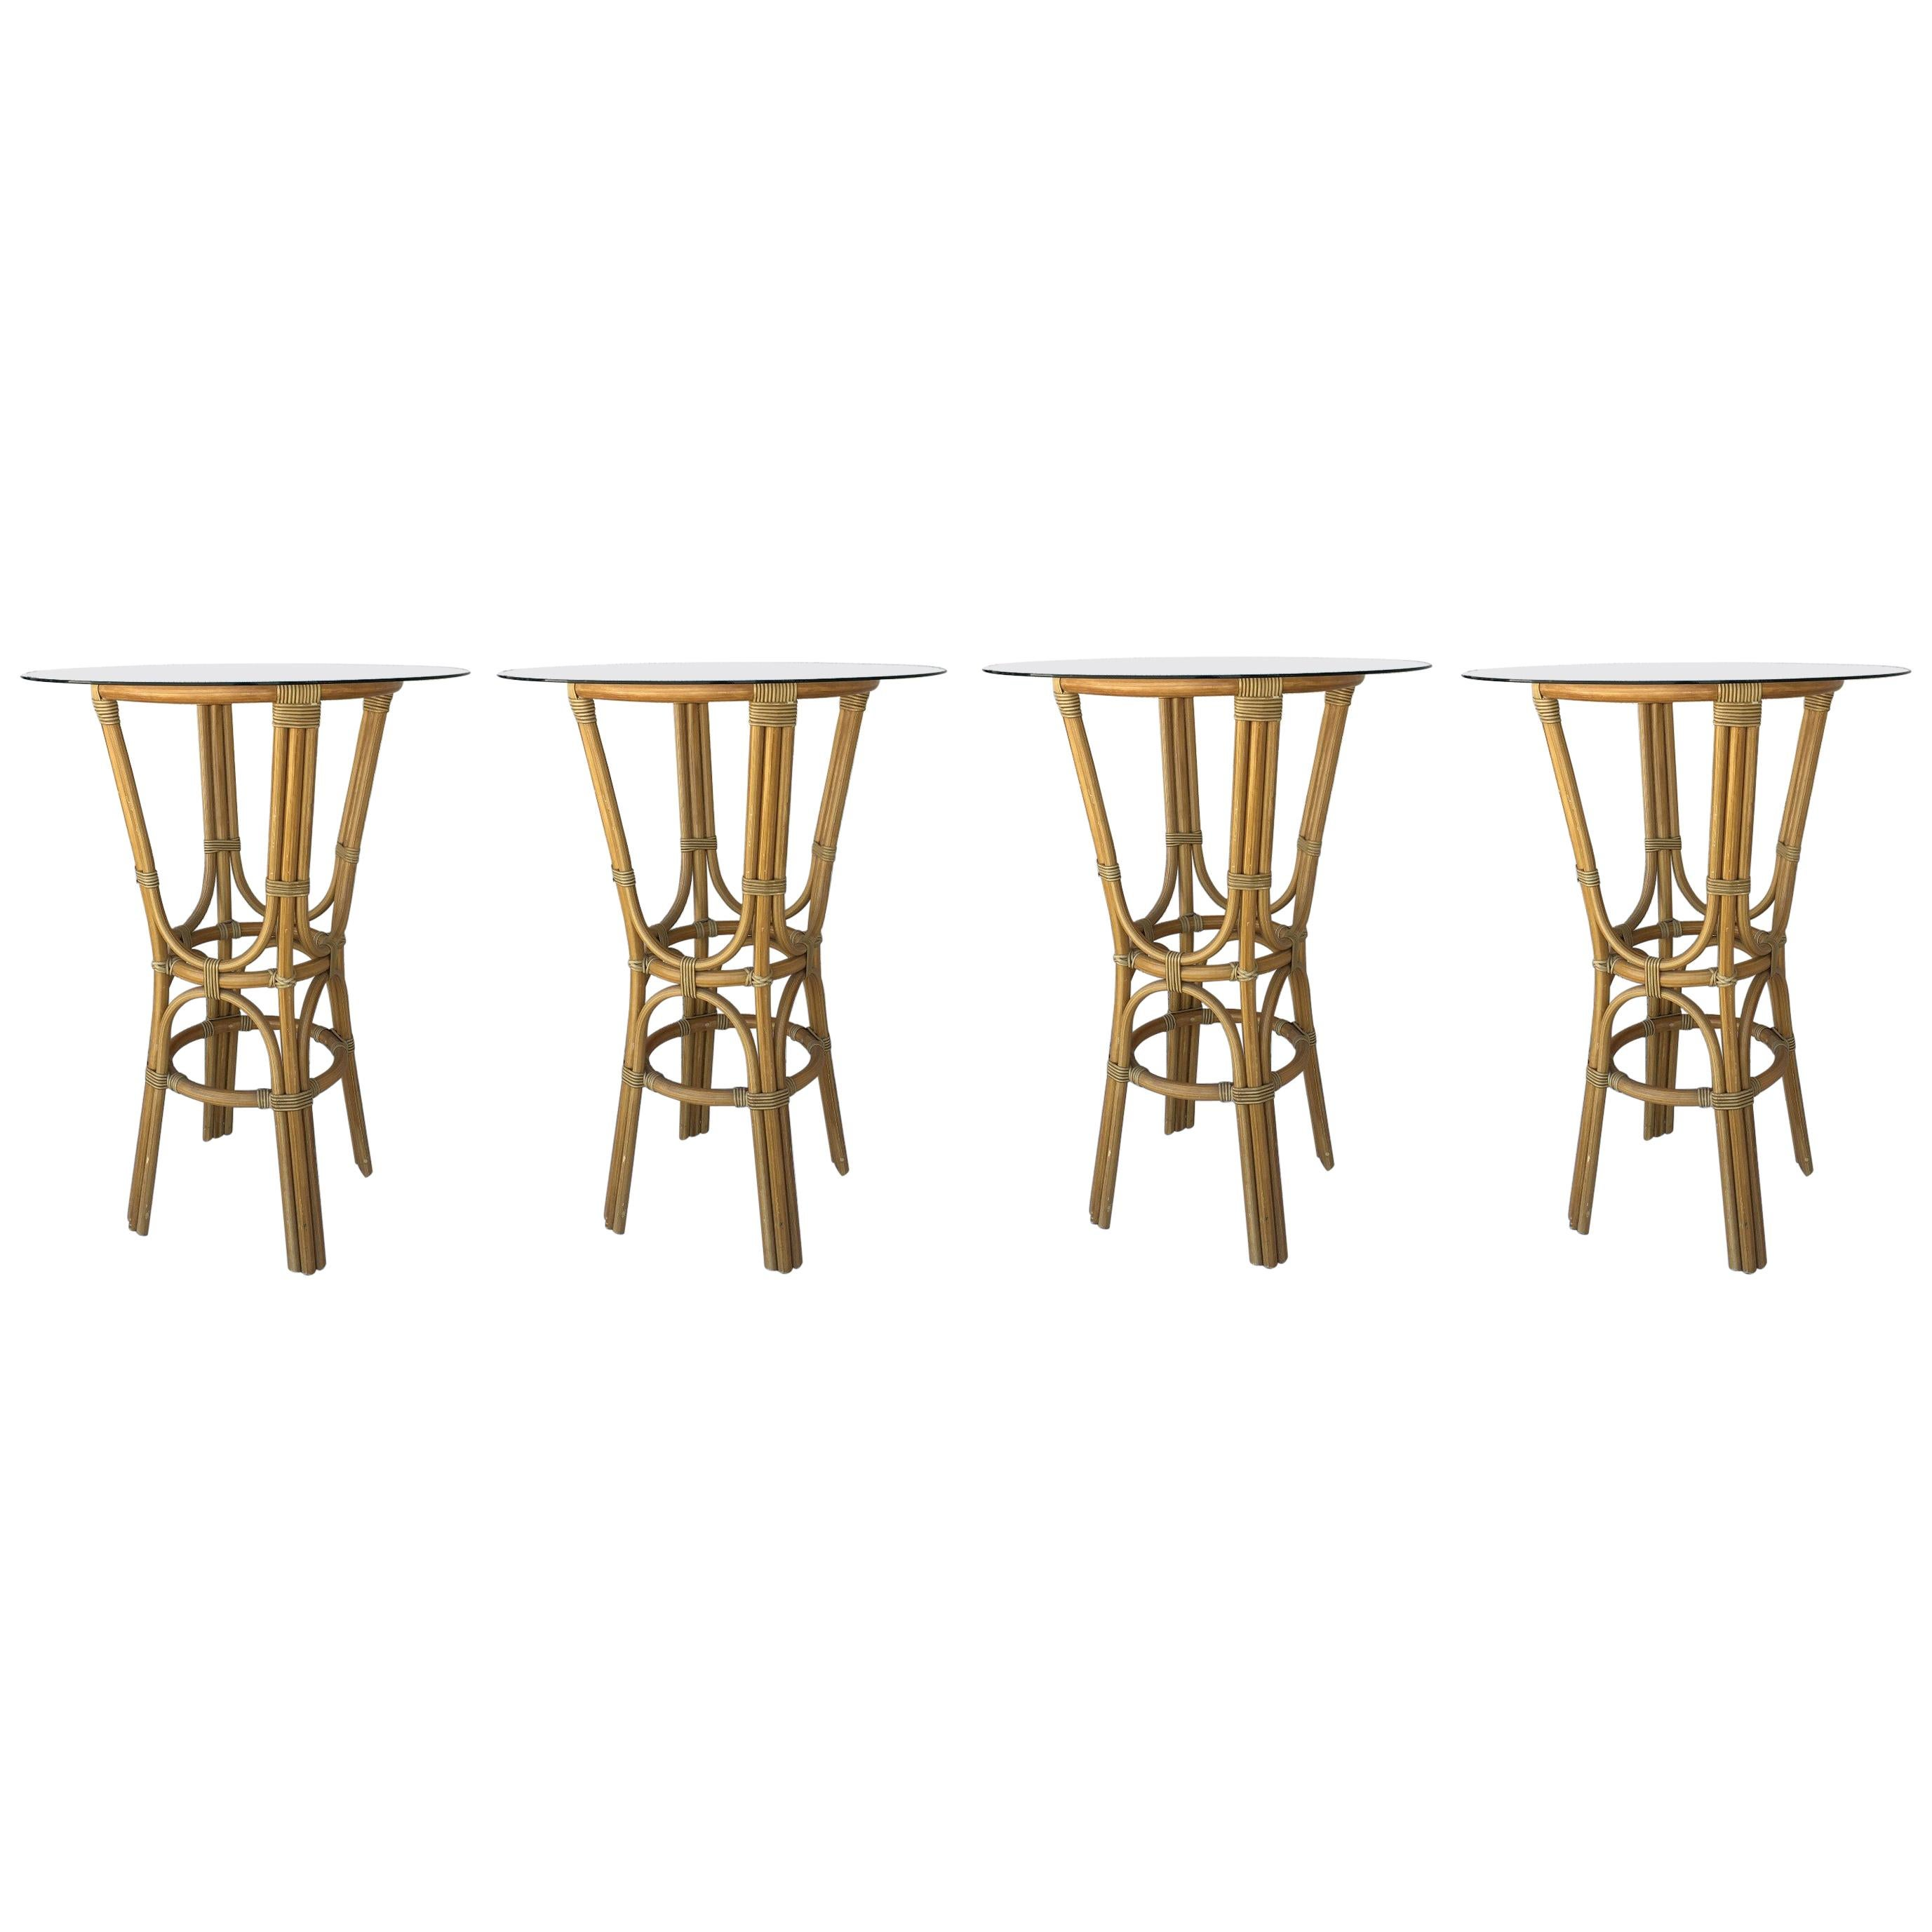 20th Century Set Of Four High Round Cocktail Table In Faux Bamboo With  Glass Top For